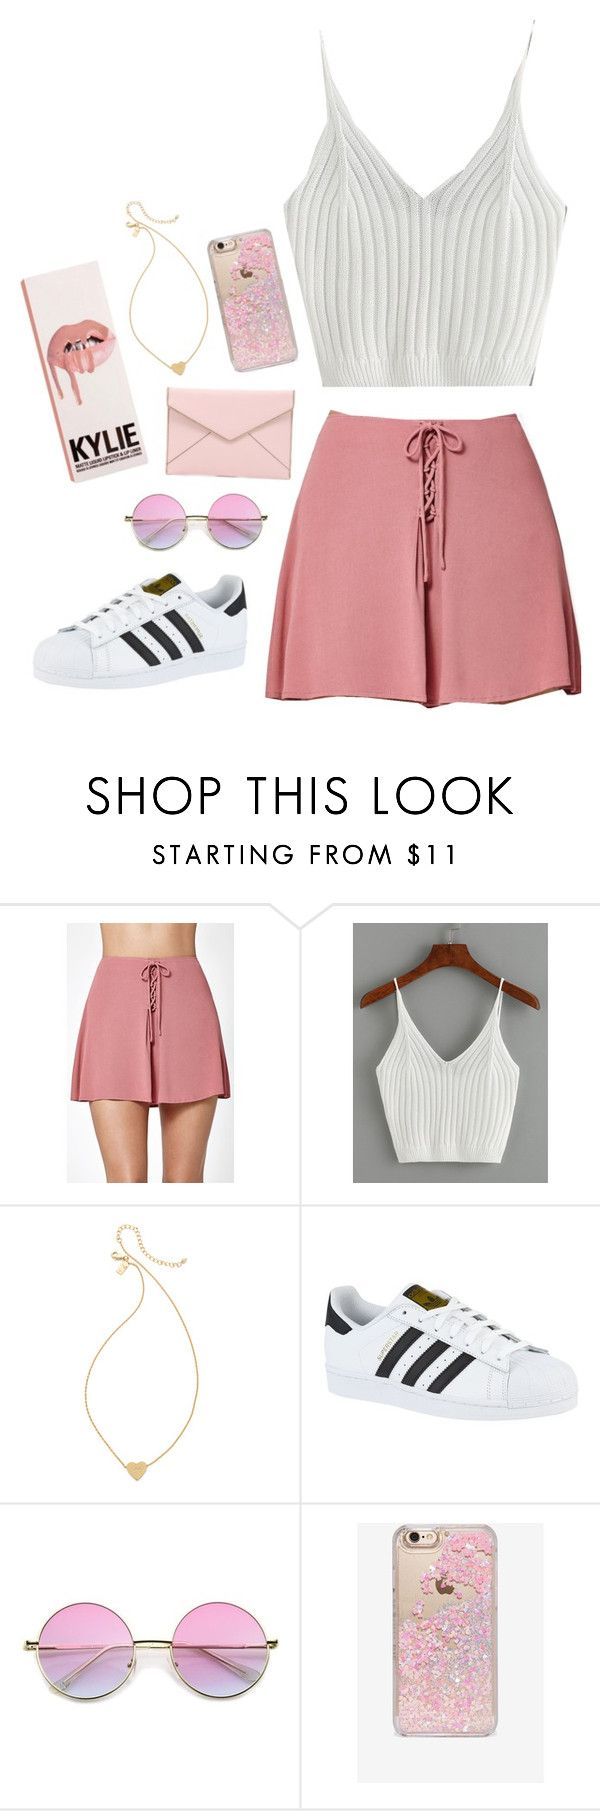 """""""Koko K"""" by ckroup ❤ liked on Polyvore featuring Kendall + Kylie, Kate Spade, adidas, Skinnydip and Rebecca Minkoff"""